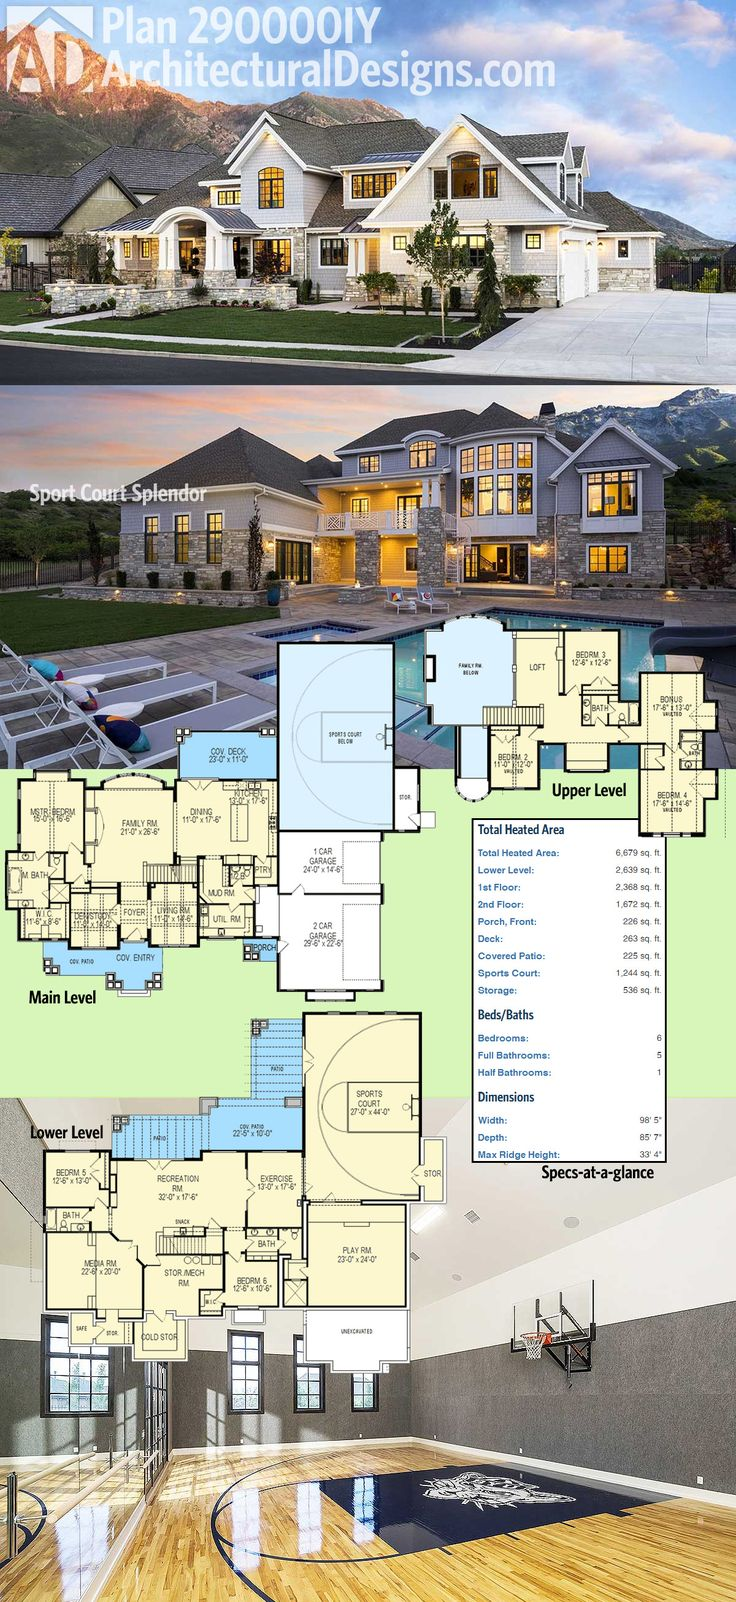 Architectural Designs Luxury House Plan 290000IY comes with a sport court in the lower walkout level.   6 beds, over 6,000 sq. ft. and incredible views out the back.    Ready when you are. Where do YOU want to build?  #sportcourt #luxuryhome #luxuryhouse #livinglarge